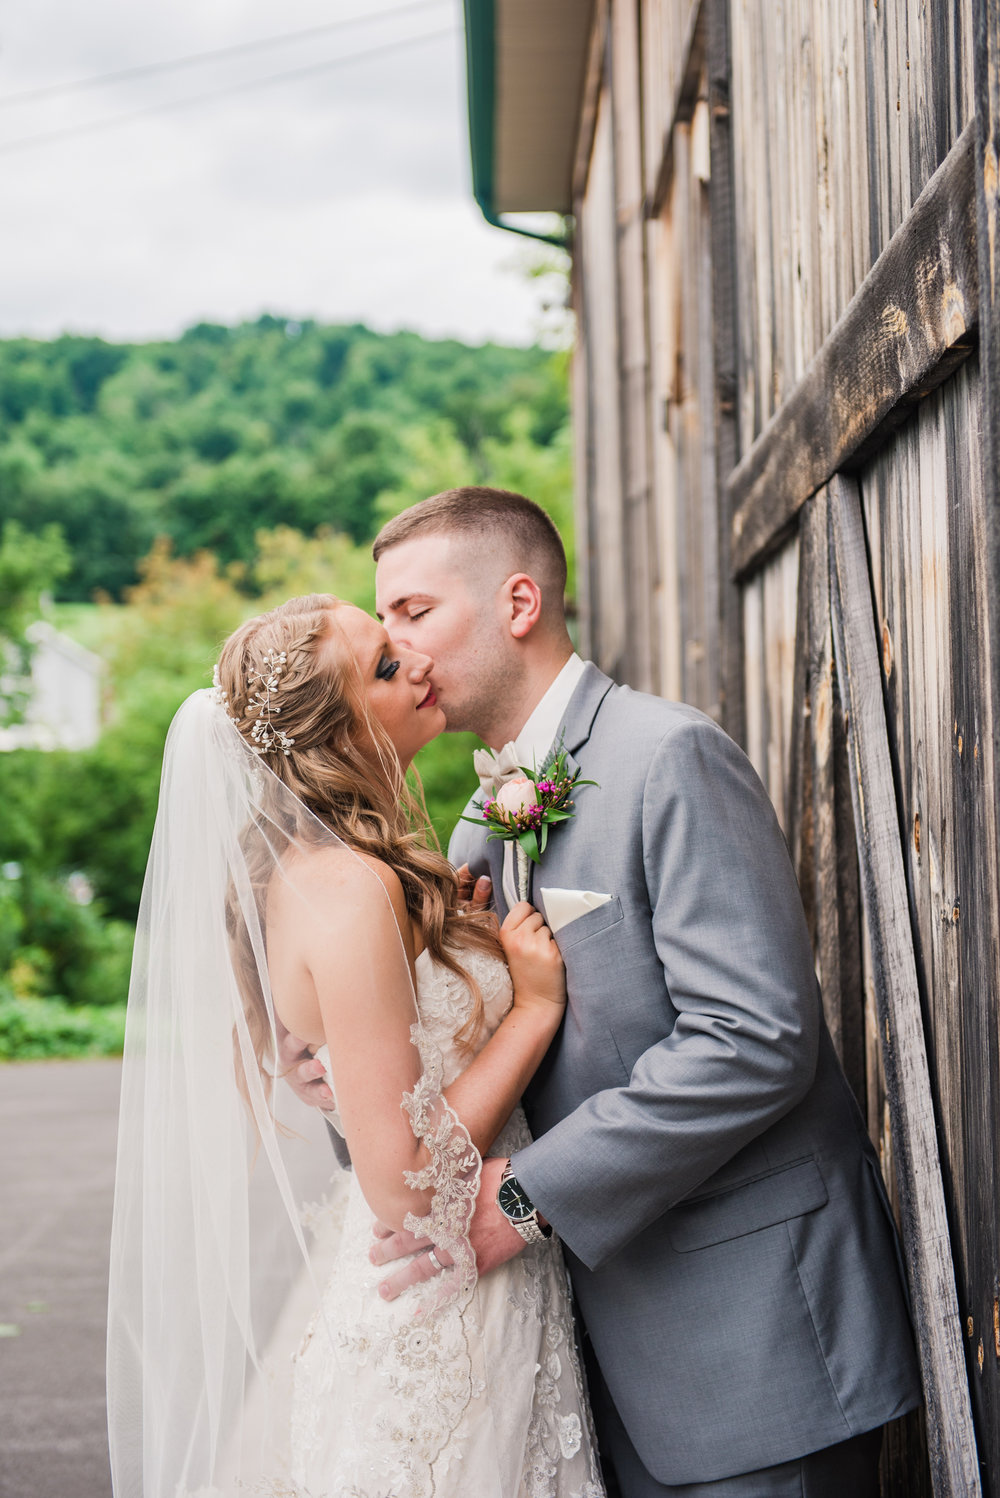 Wolf_Oak_Acres_Central_NY_Wedding_JILL_STUDIO_Rochester_NY_Photographer_DSC_8659.jpg